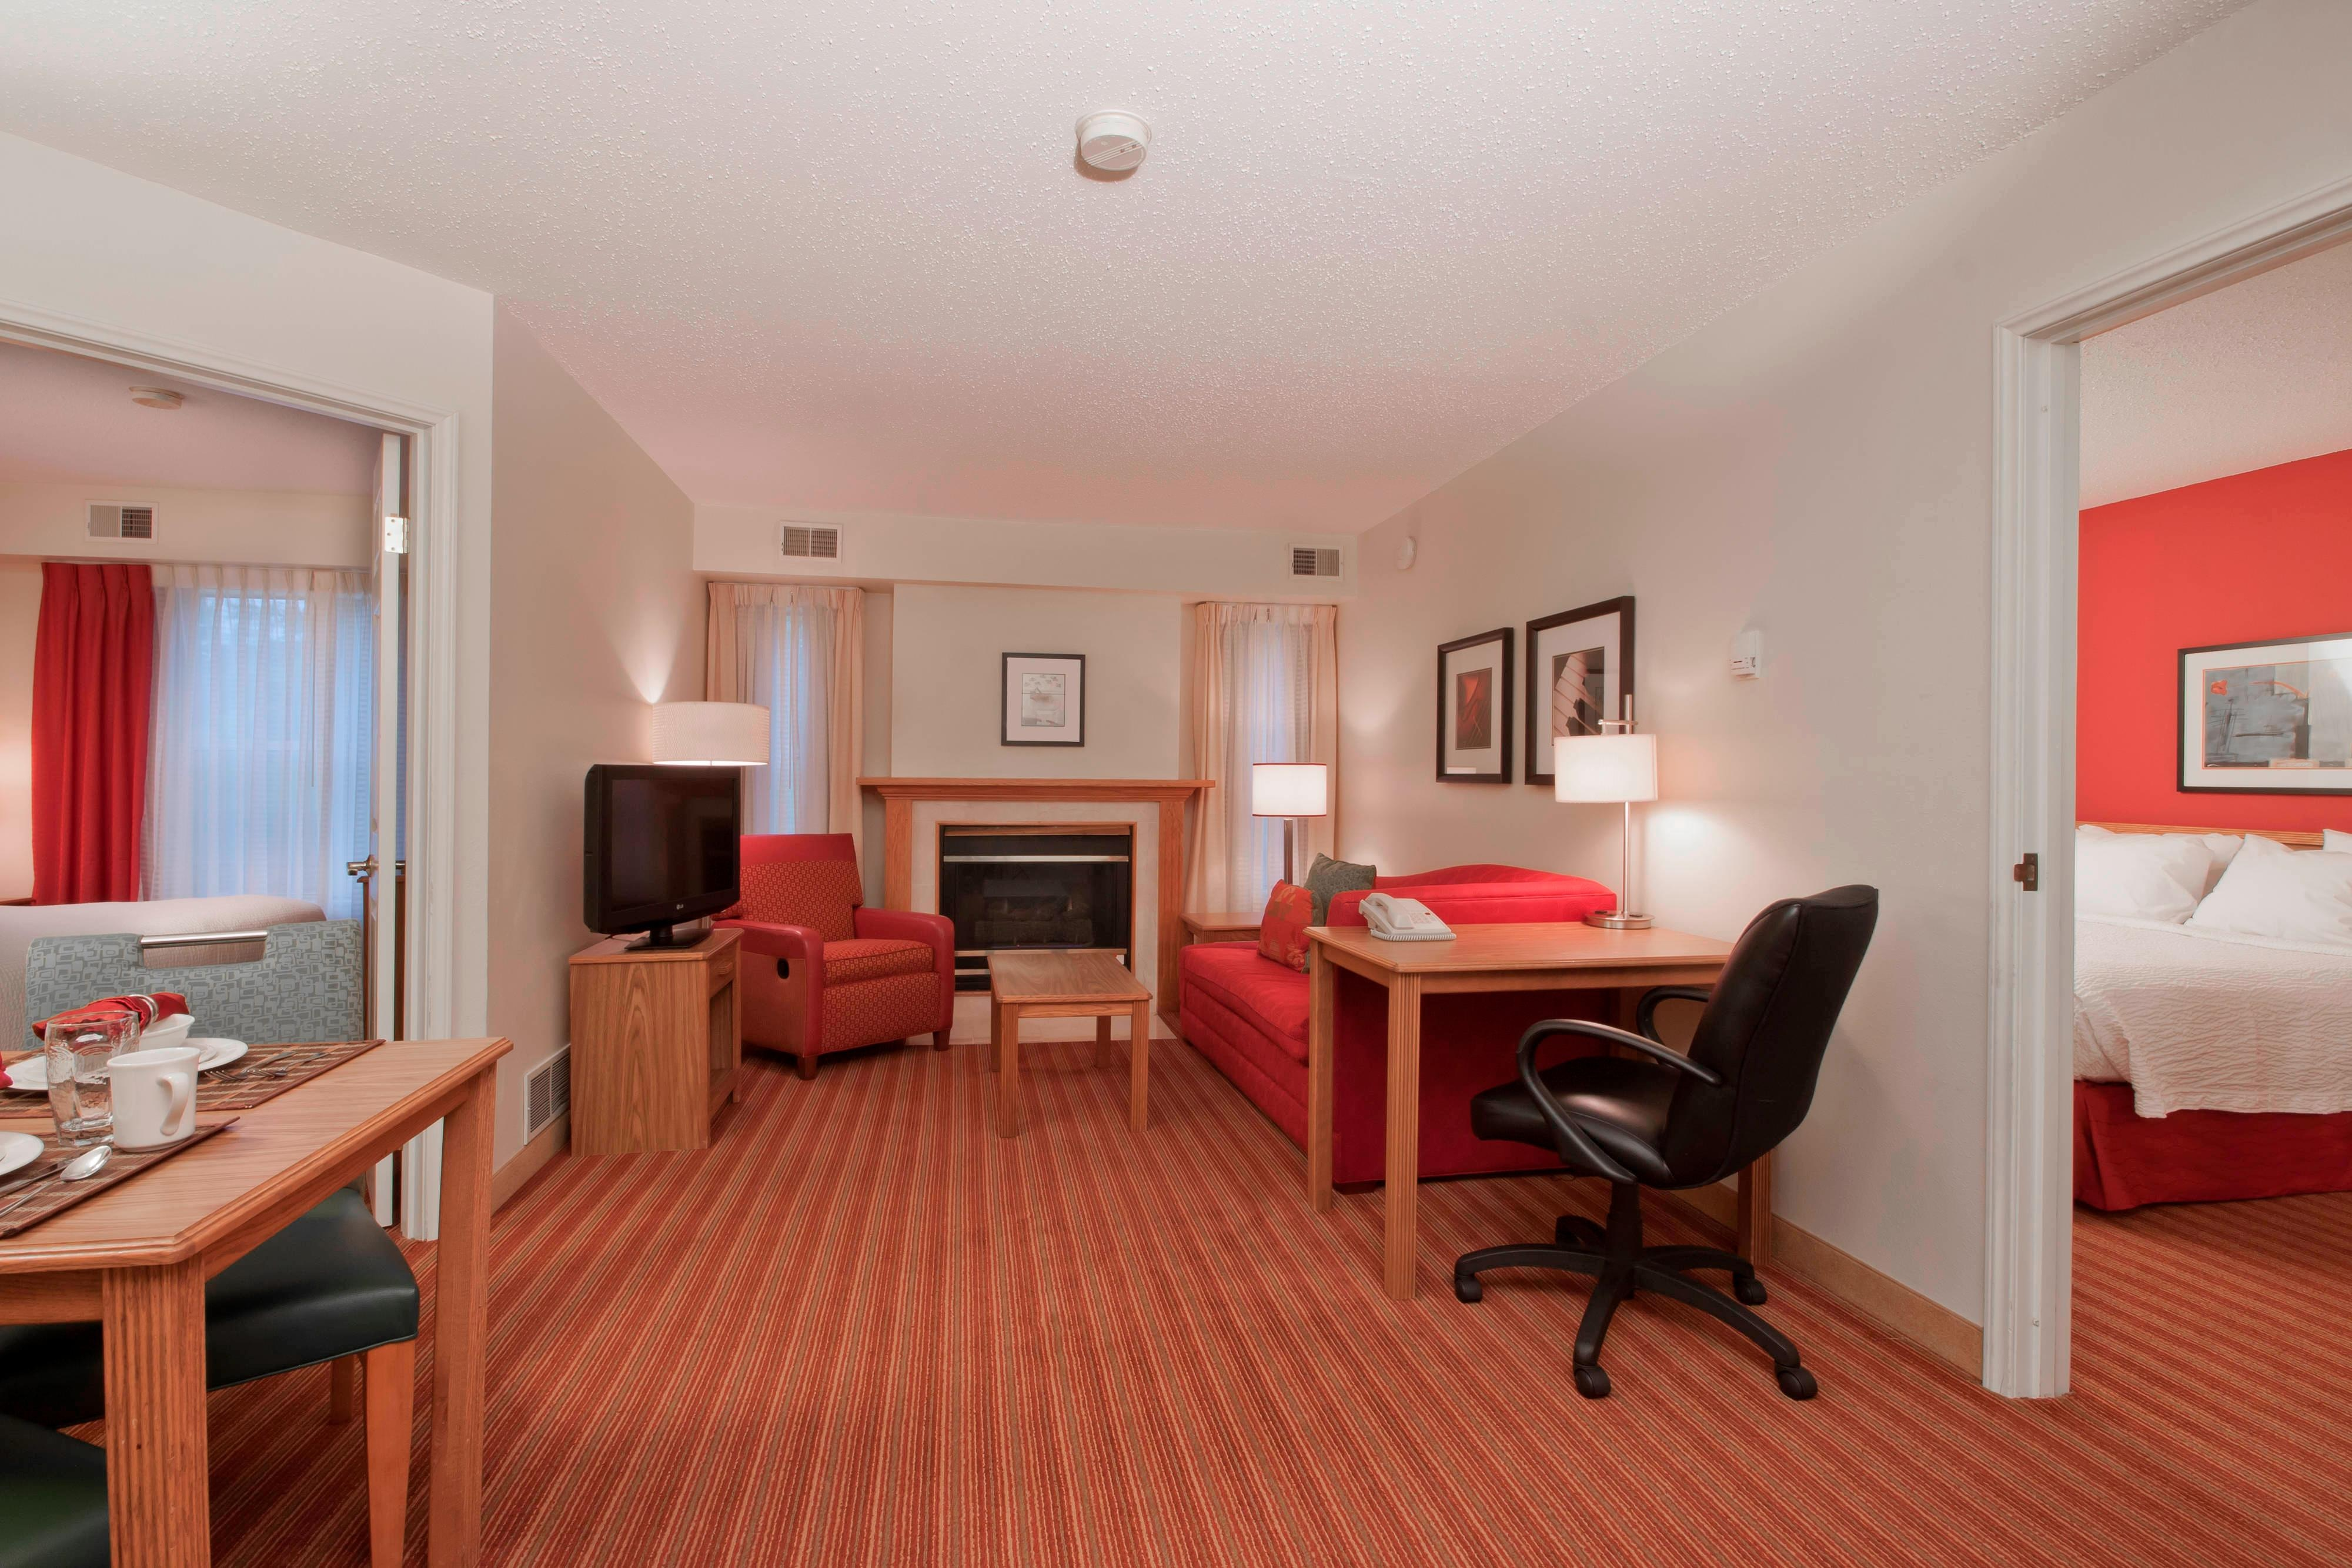 cleveland cleta clinic suite orleans airport clsc hotel suites accommodations rooms towneplace new hor bedroom in hotels